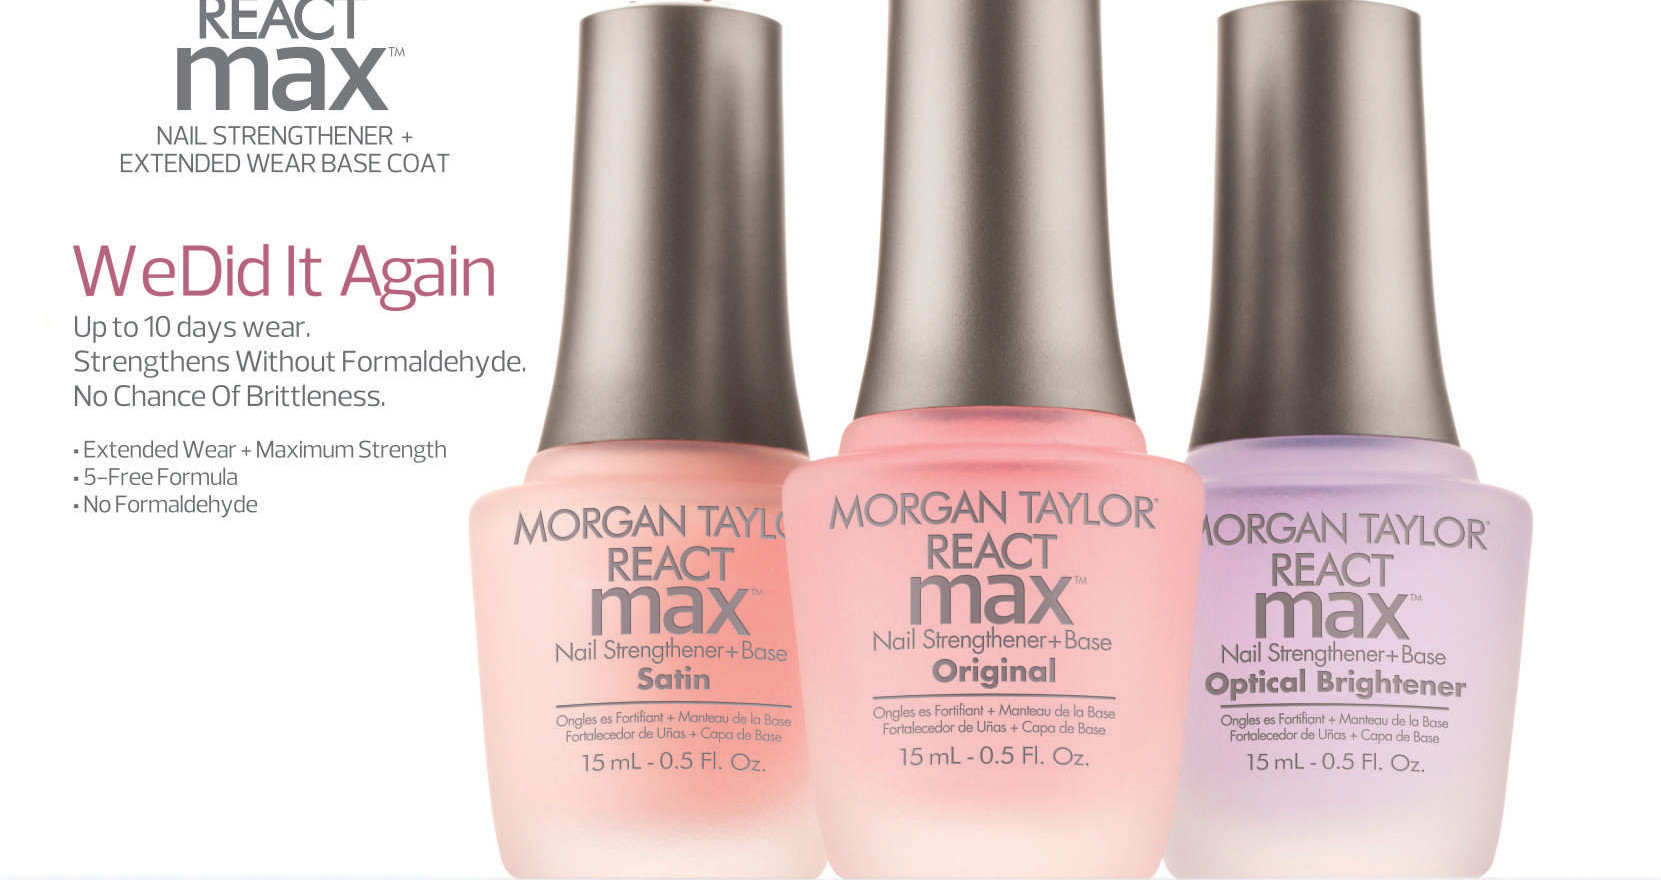 Morgan Taylor REACTmax™ 2-in-1 Nail Strengthener Base Coats create strong, flexible nails that work (and play!) as hard as you do!